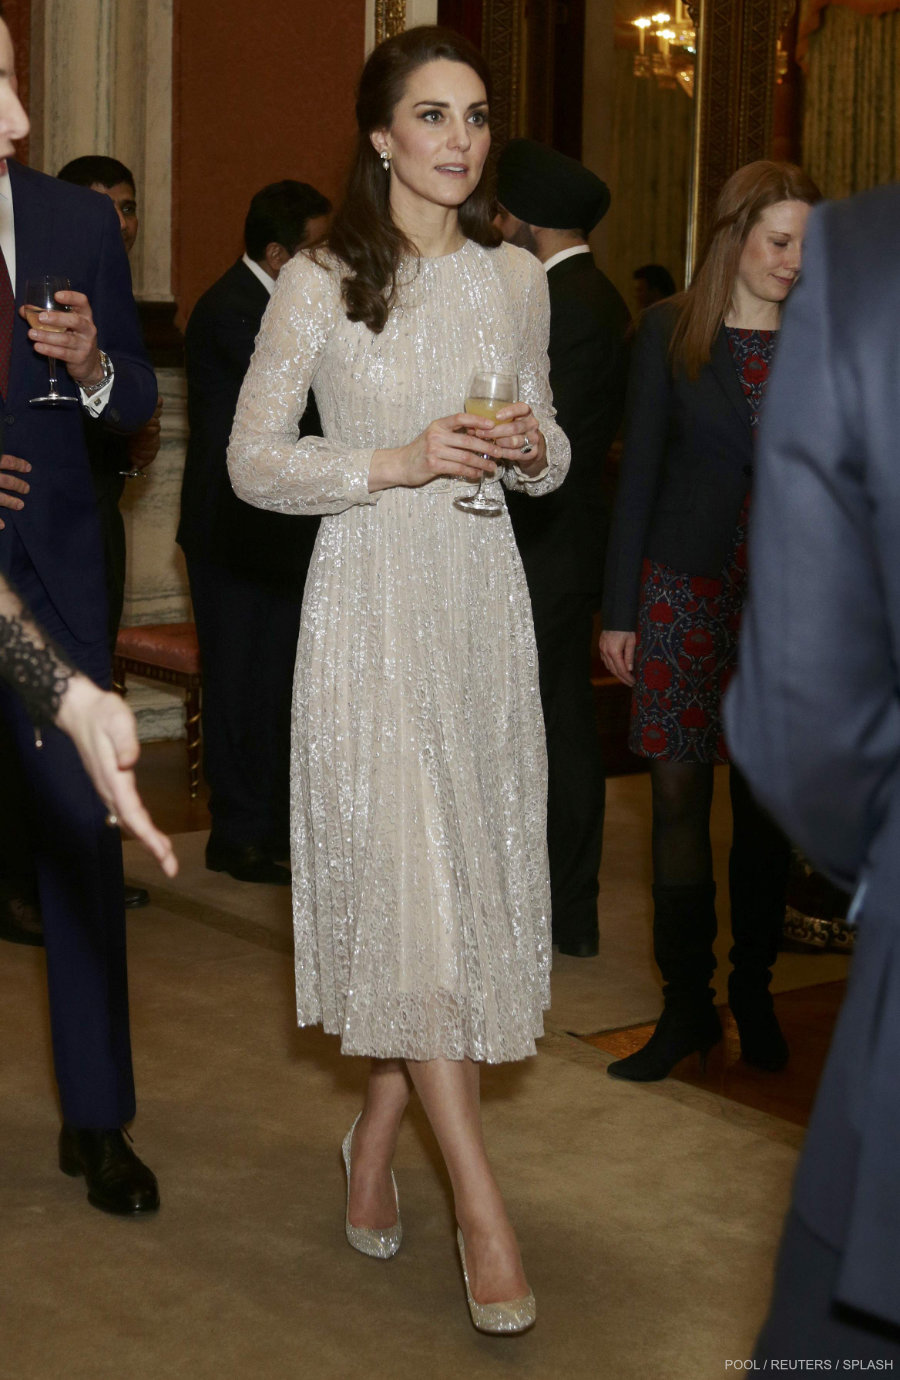 The Best Kate Middleton Fashion Blog